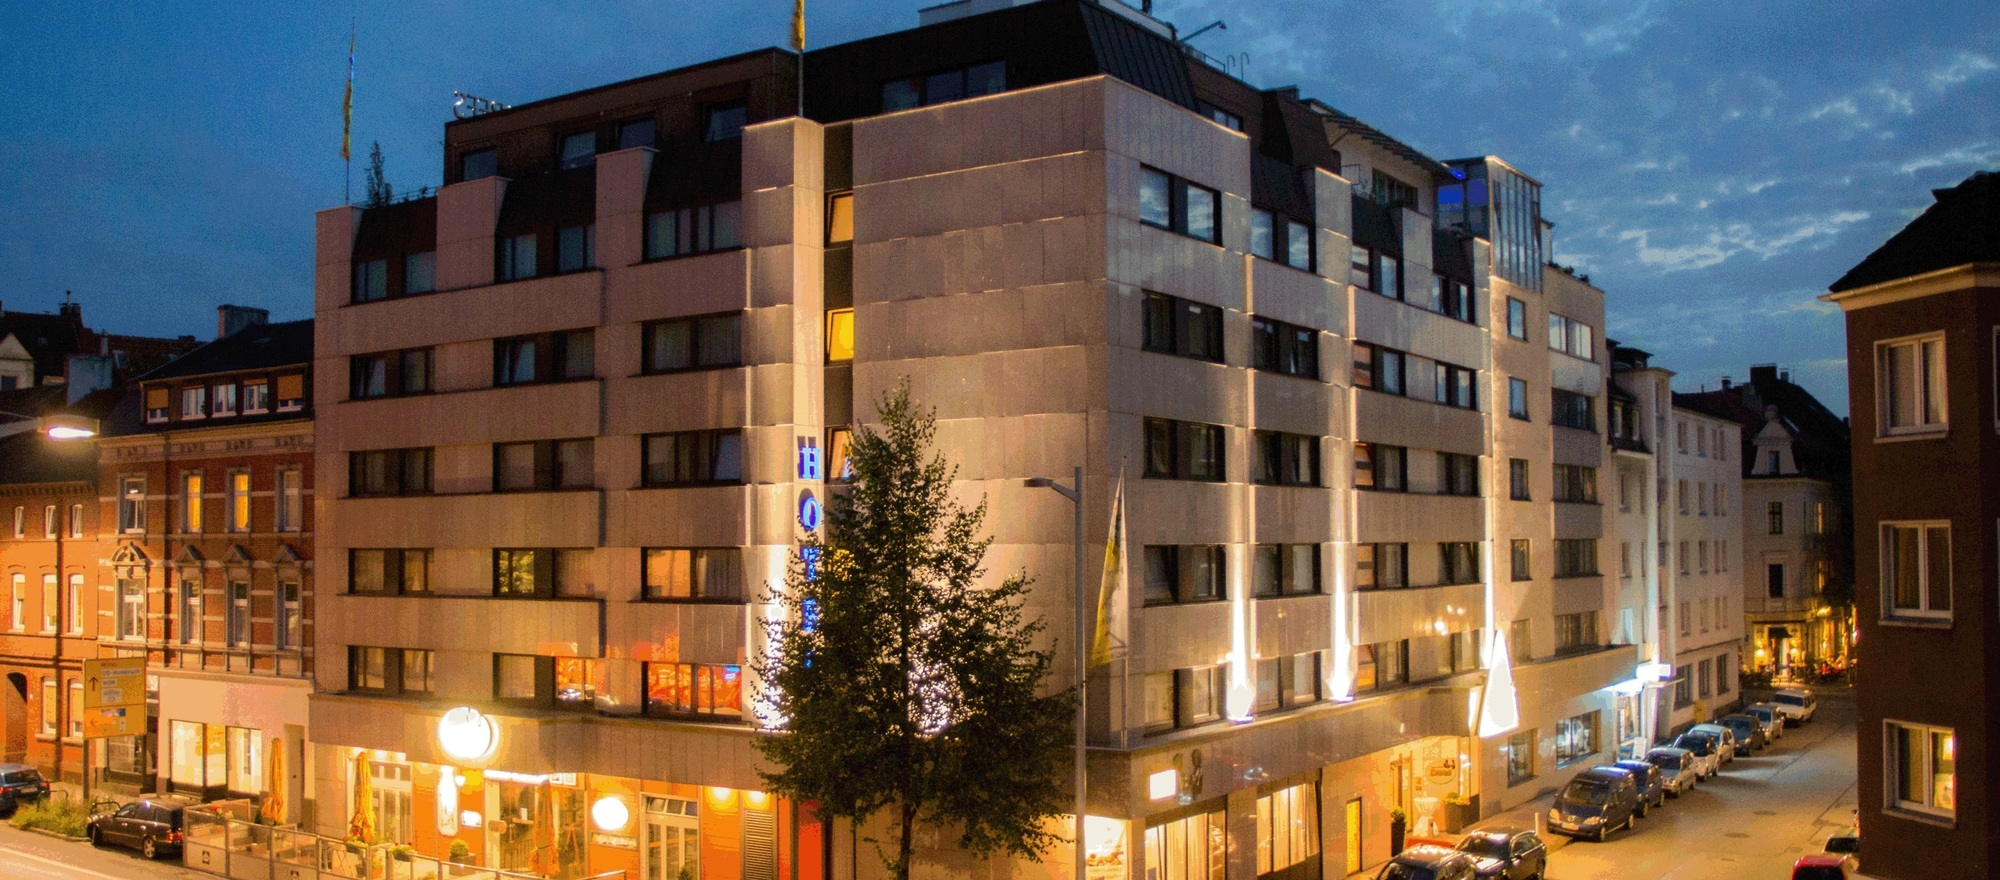 A five-minute walk from the trade fair and congress center lies the 4-star Ringhotel Drees in Dortmund